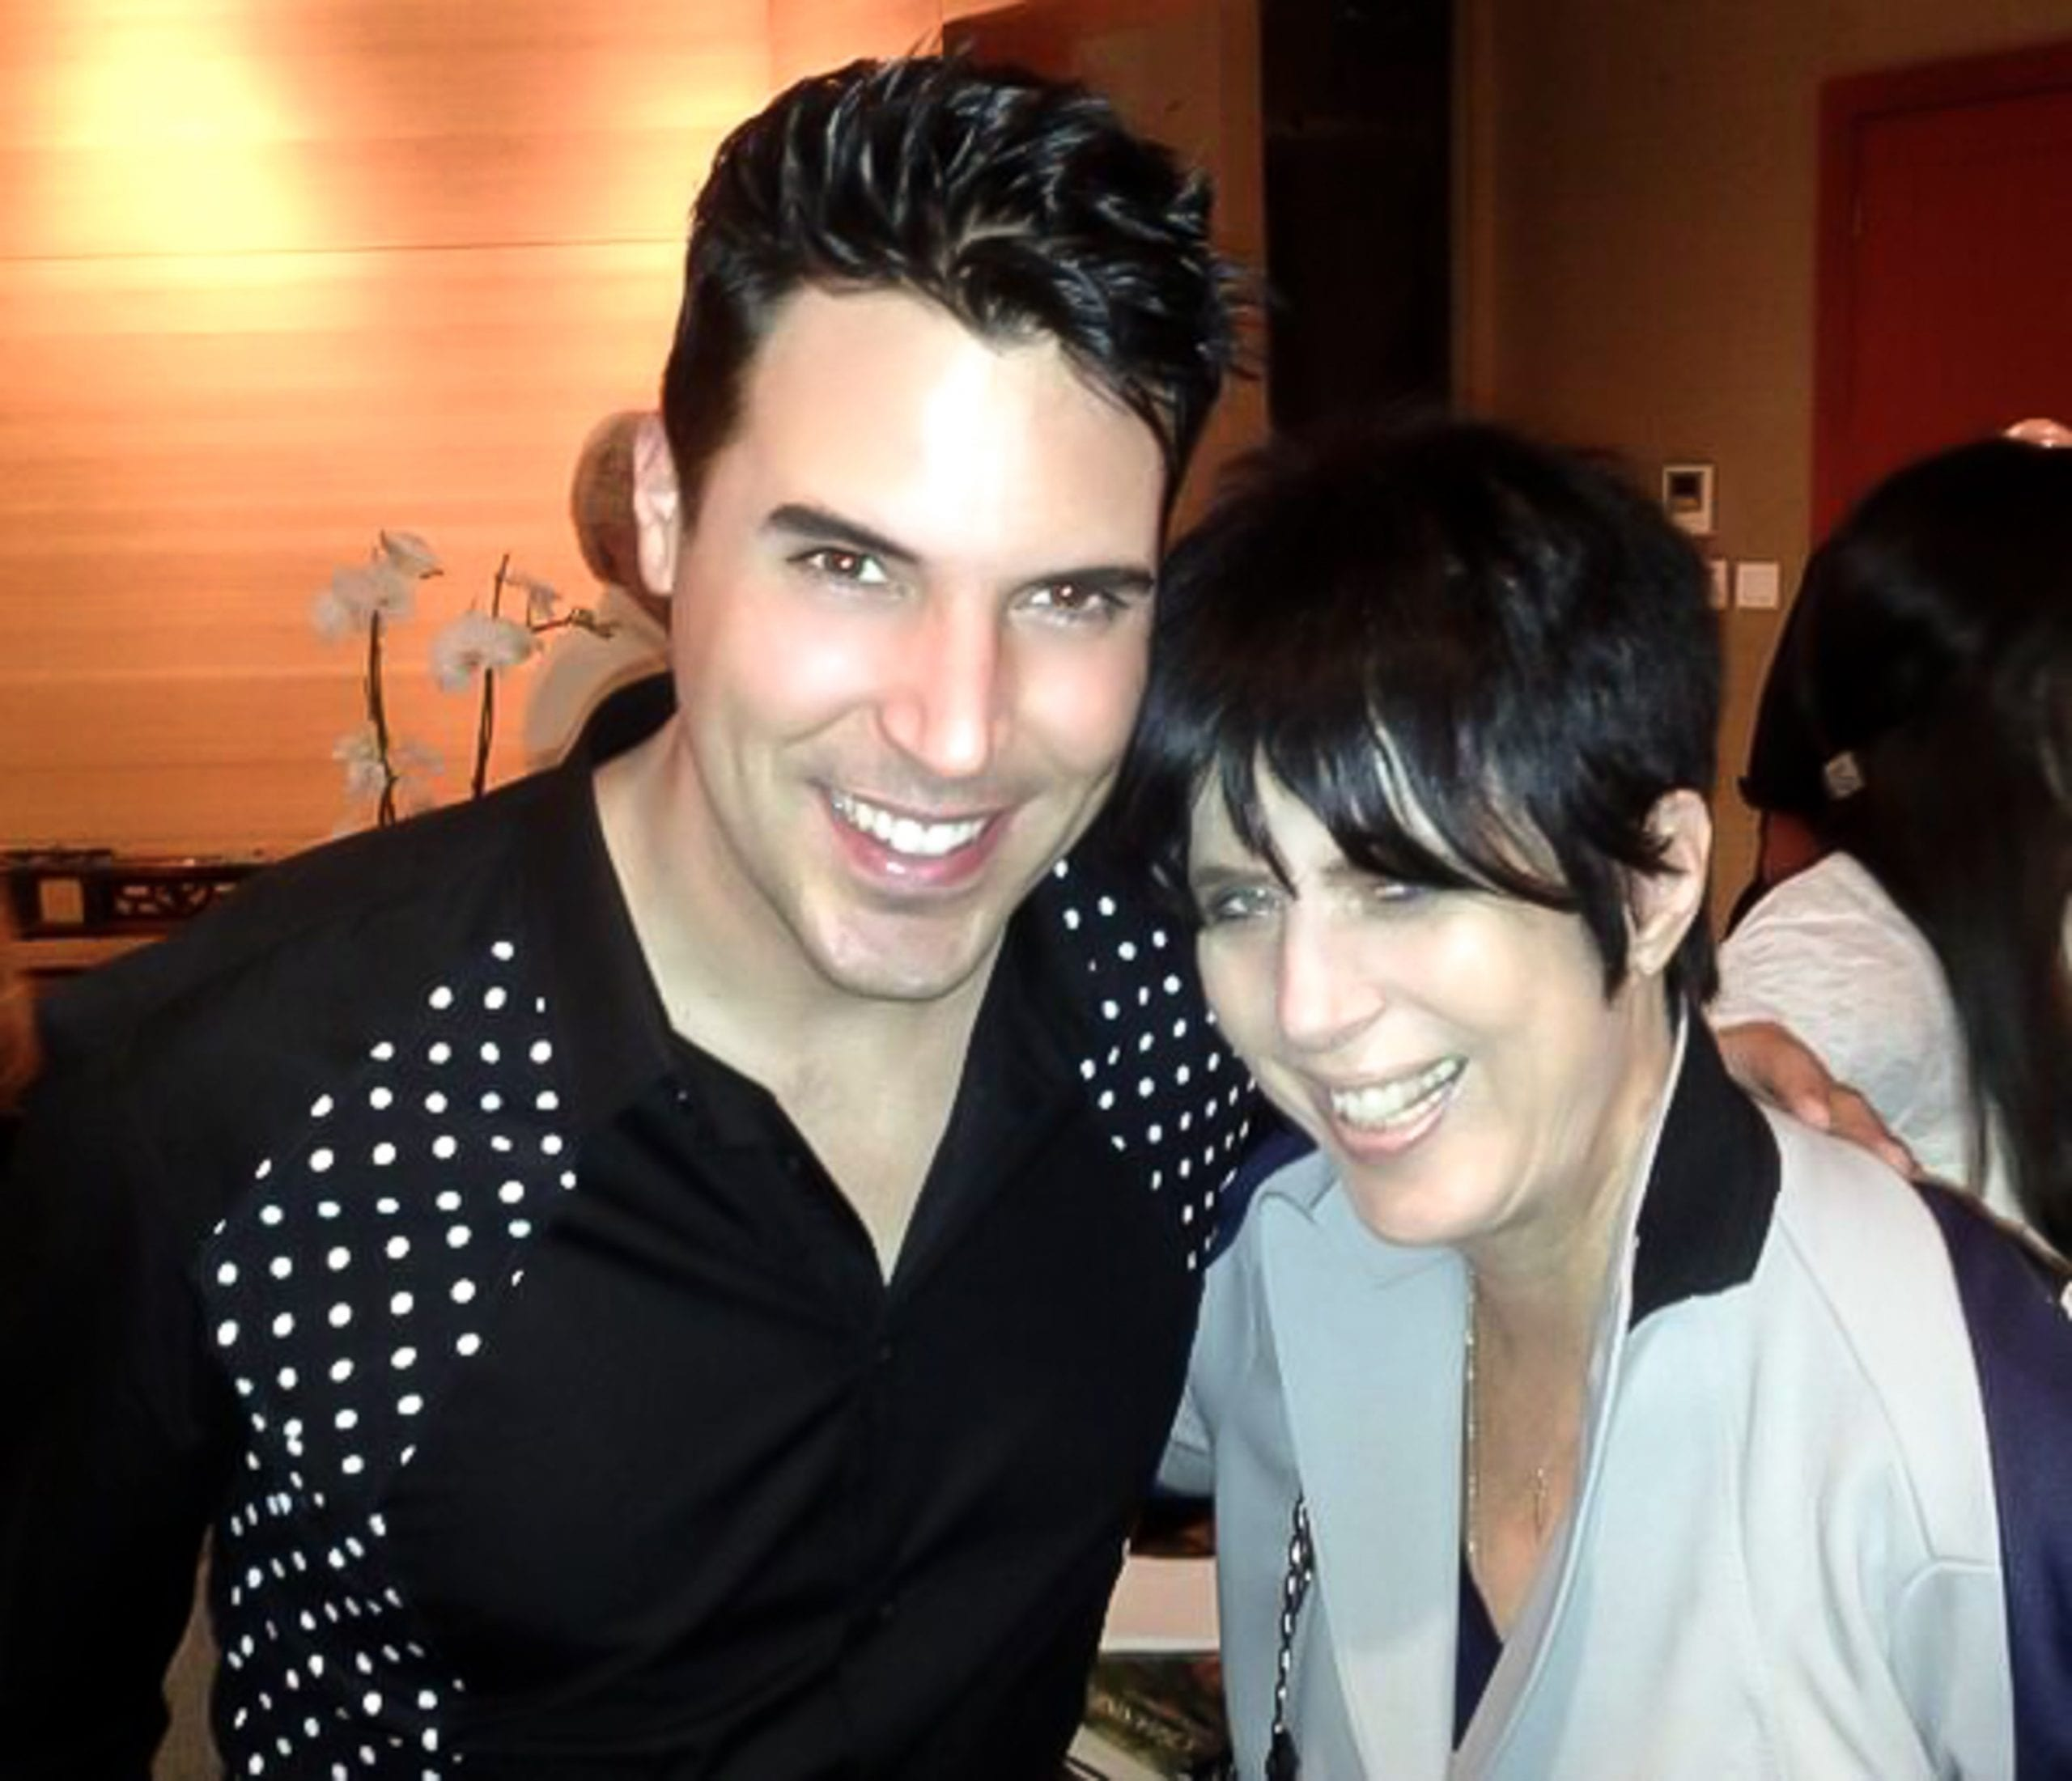 FRANKIE WORKS WITH GRAMMY WINNING SONGWRITER DIANE WARREN